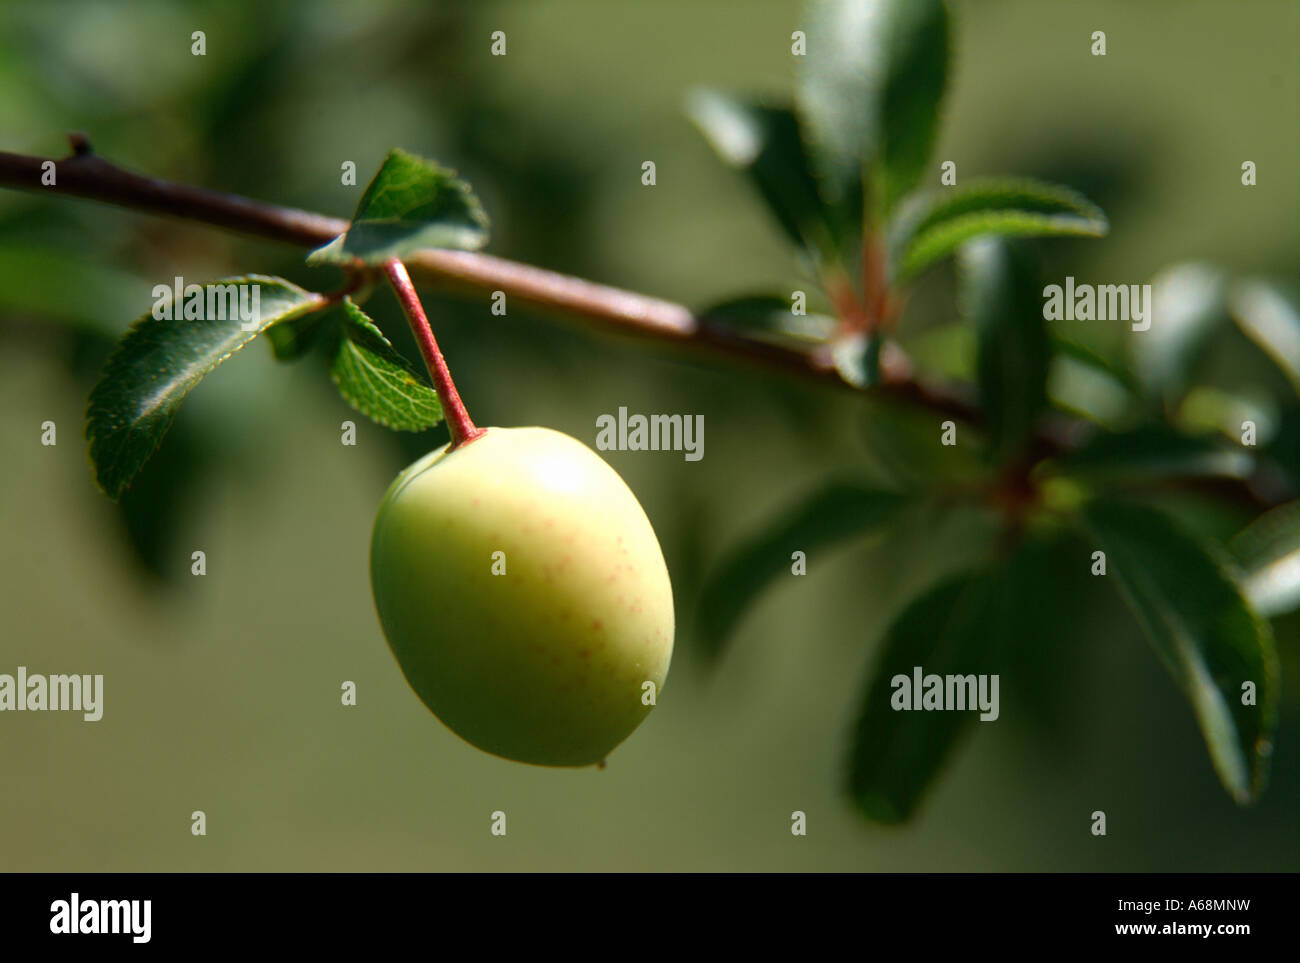 First plums on tree. Valencia. Spain. Stock Photo